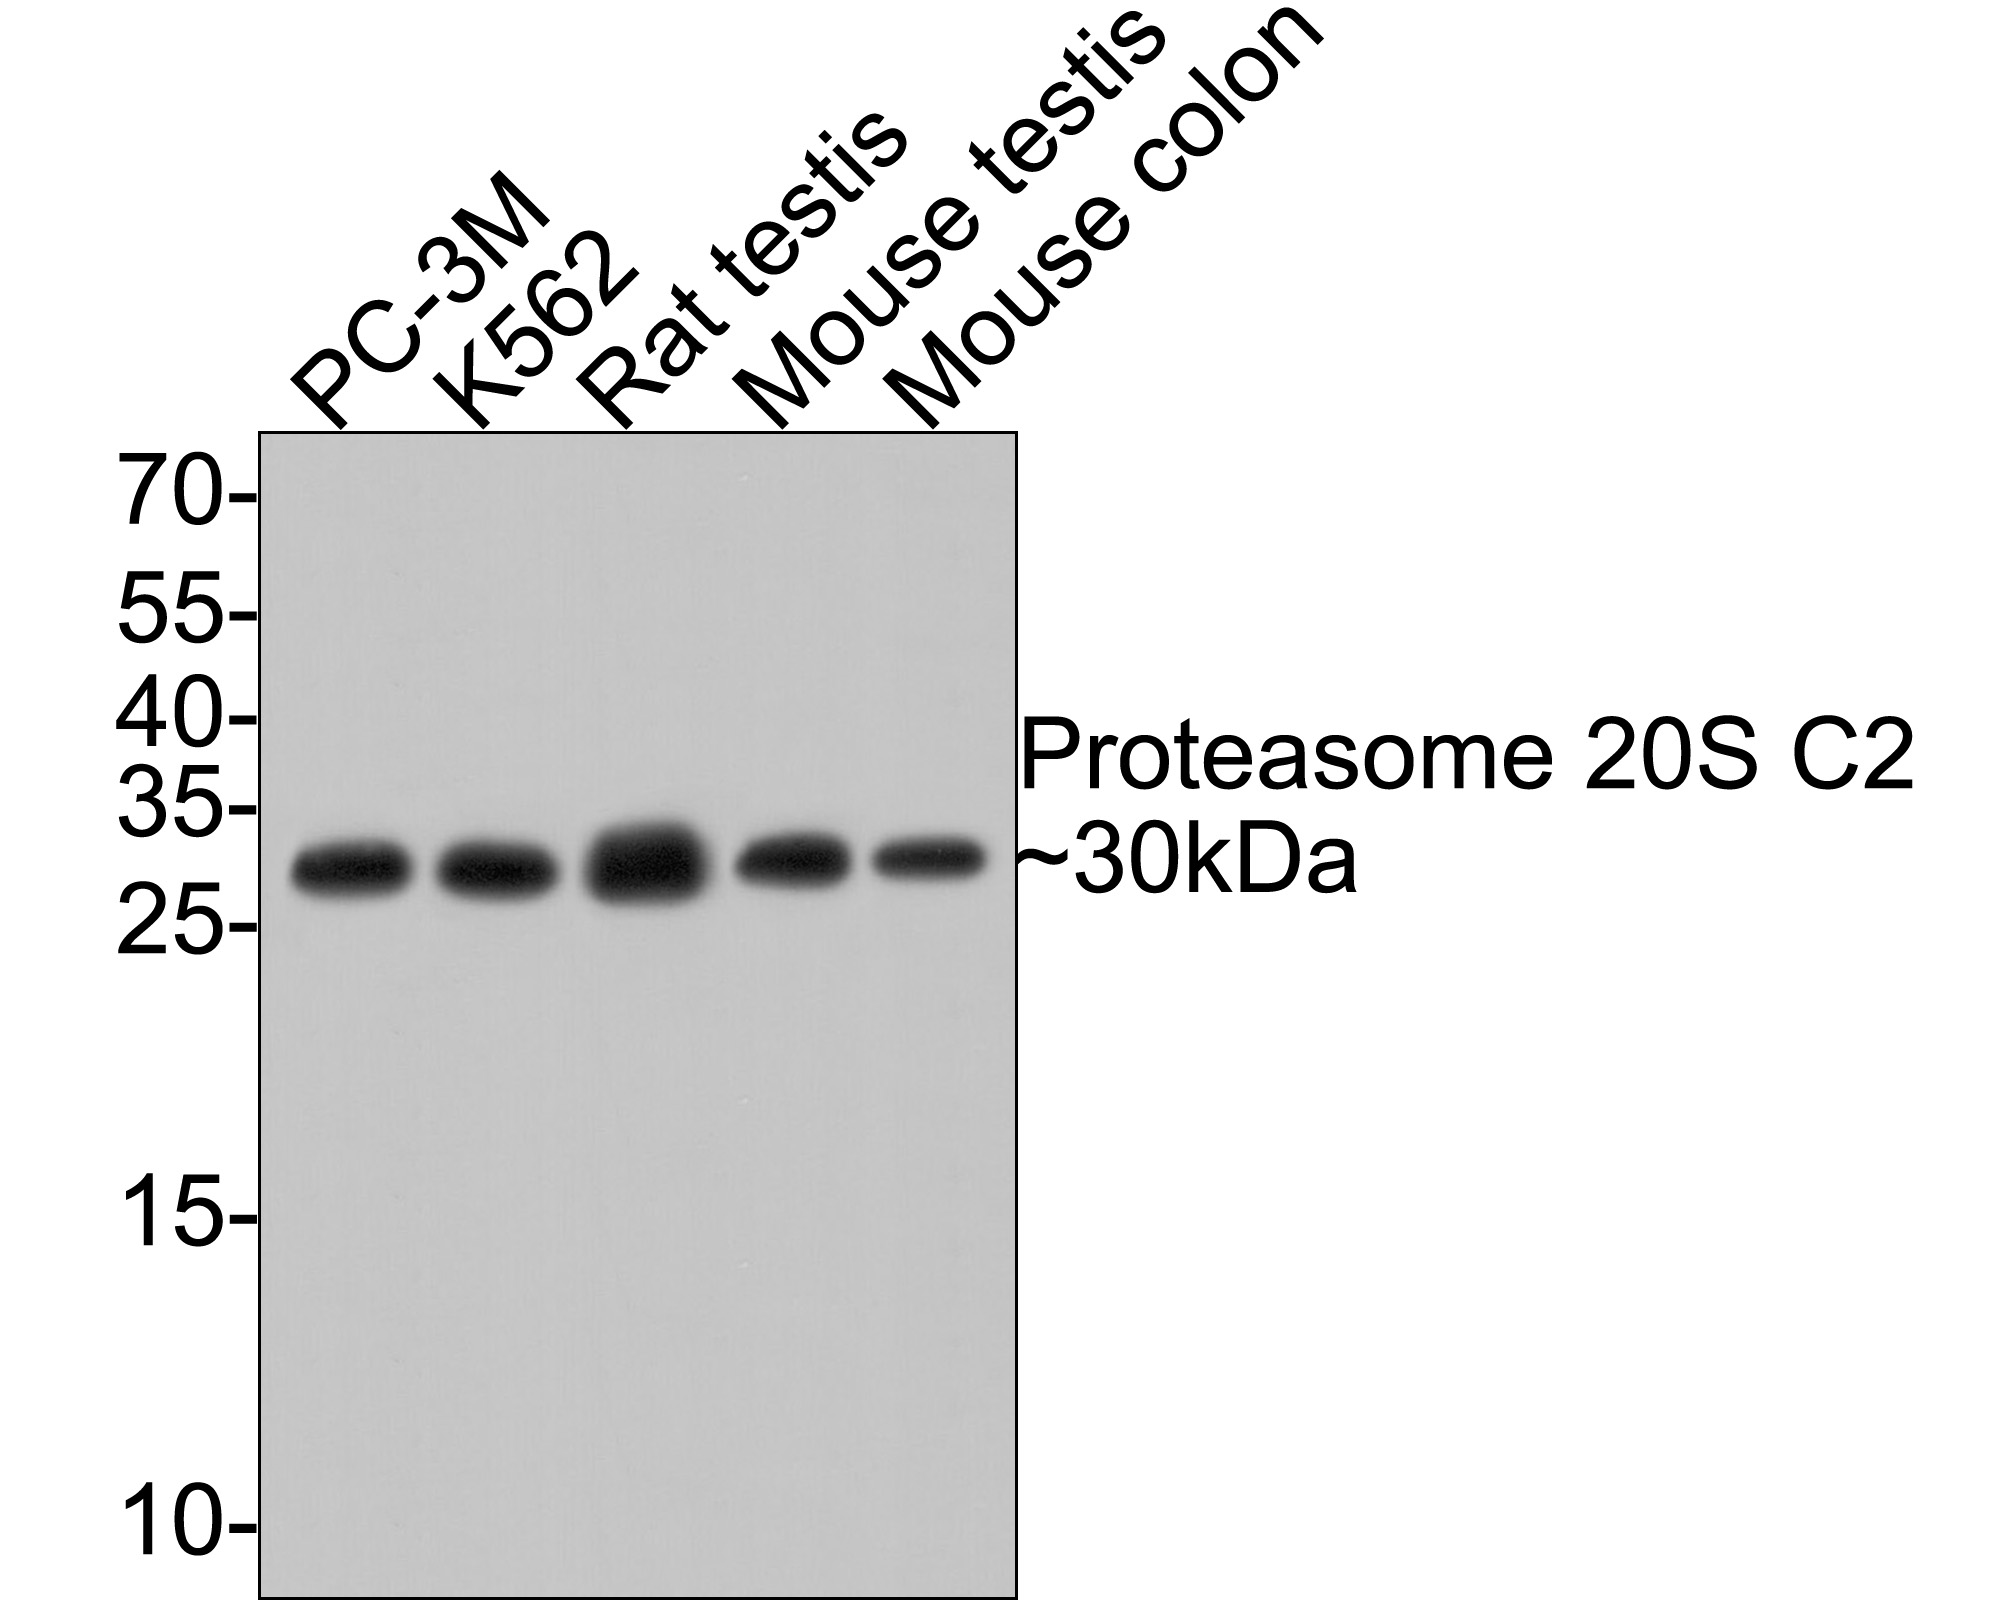 Western blot analysis of Proteasome 20S C2 on different lysates using anti-Proteasome 20S C2 antibody at 1/500 dilution.<br />  Positive control:<br />  Lane 1: PC-3M<br />     Lane 2: K562 <br />   Lane 3: Rat testis<br />  Lane 4: Mouse testis <br />    Lane 5: Mouse colon